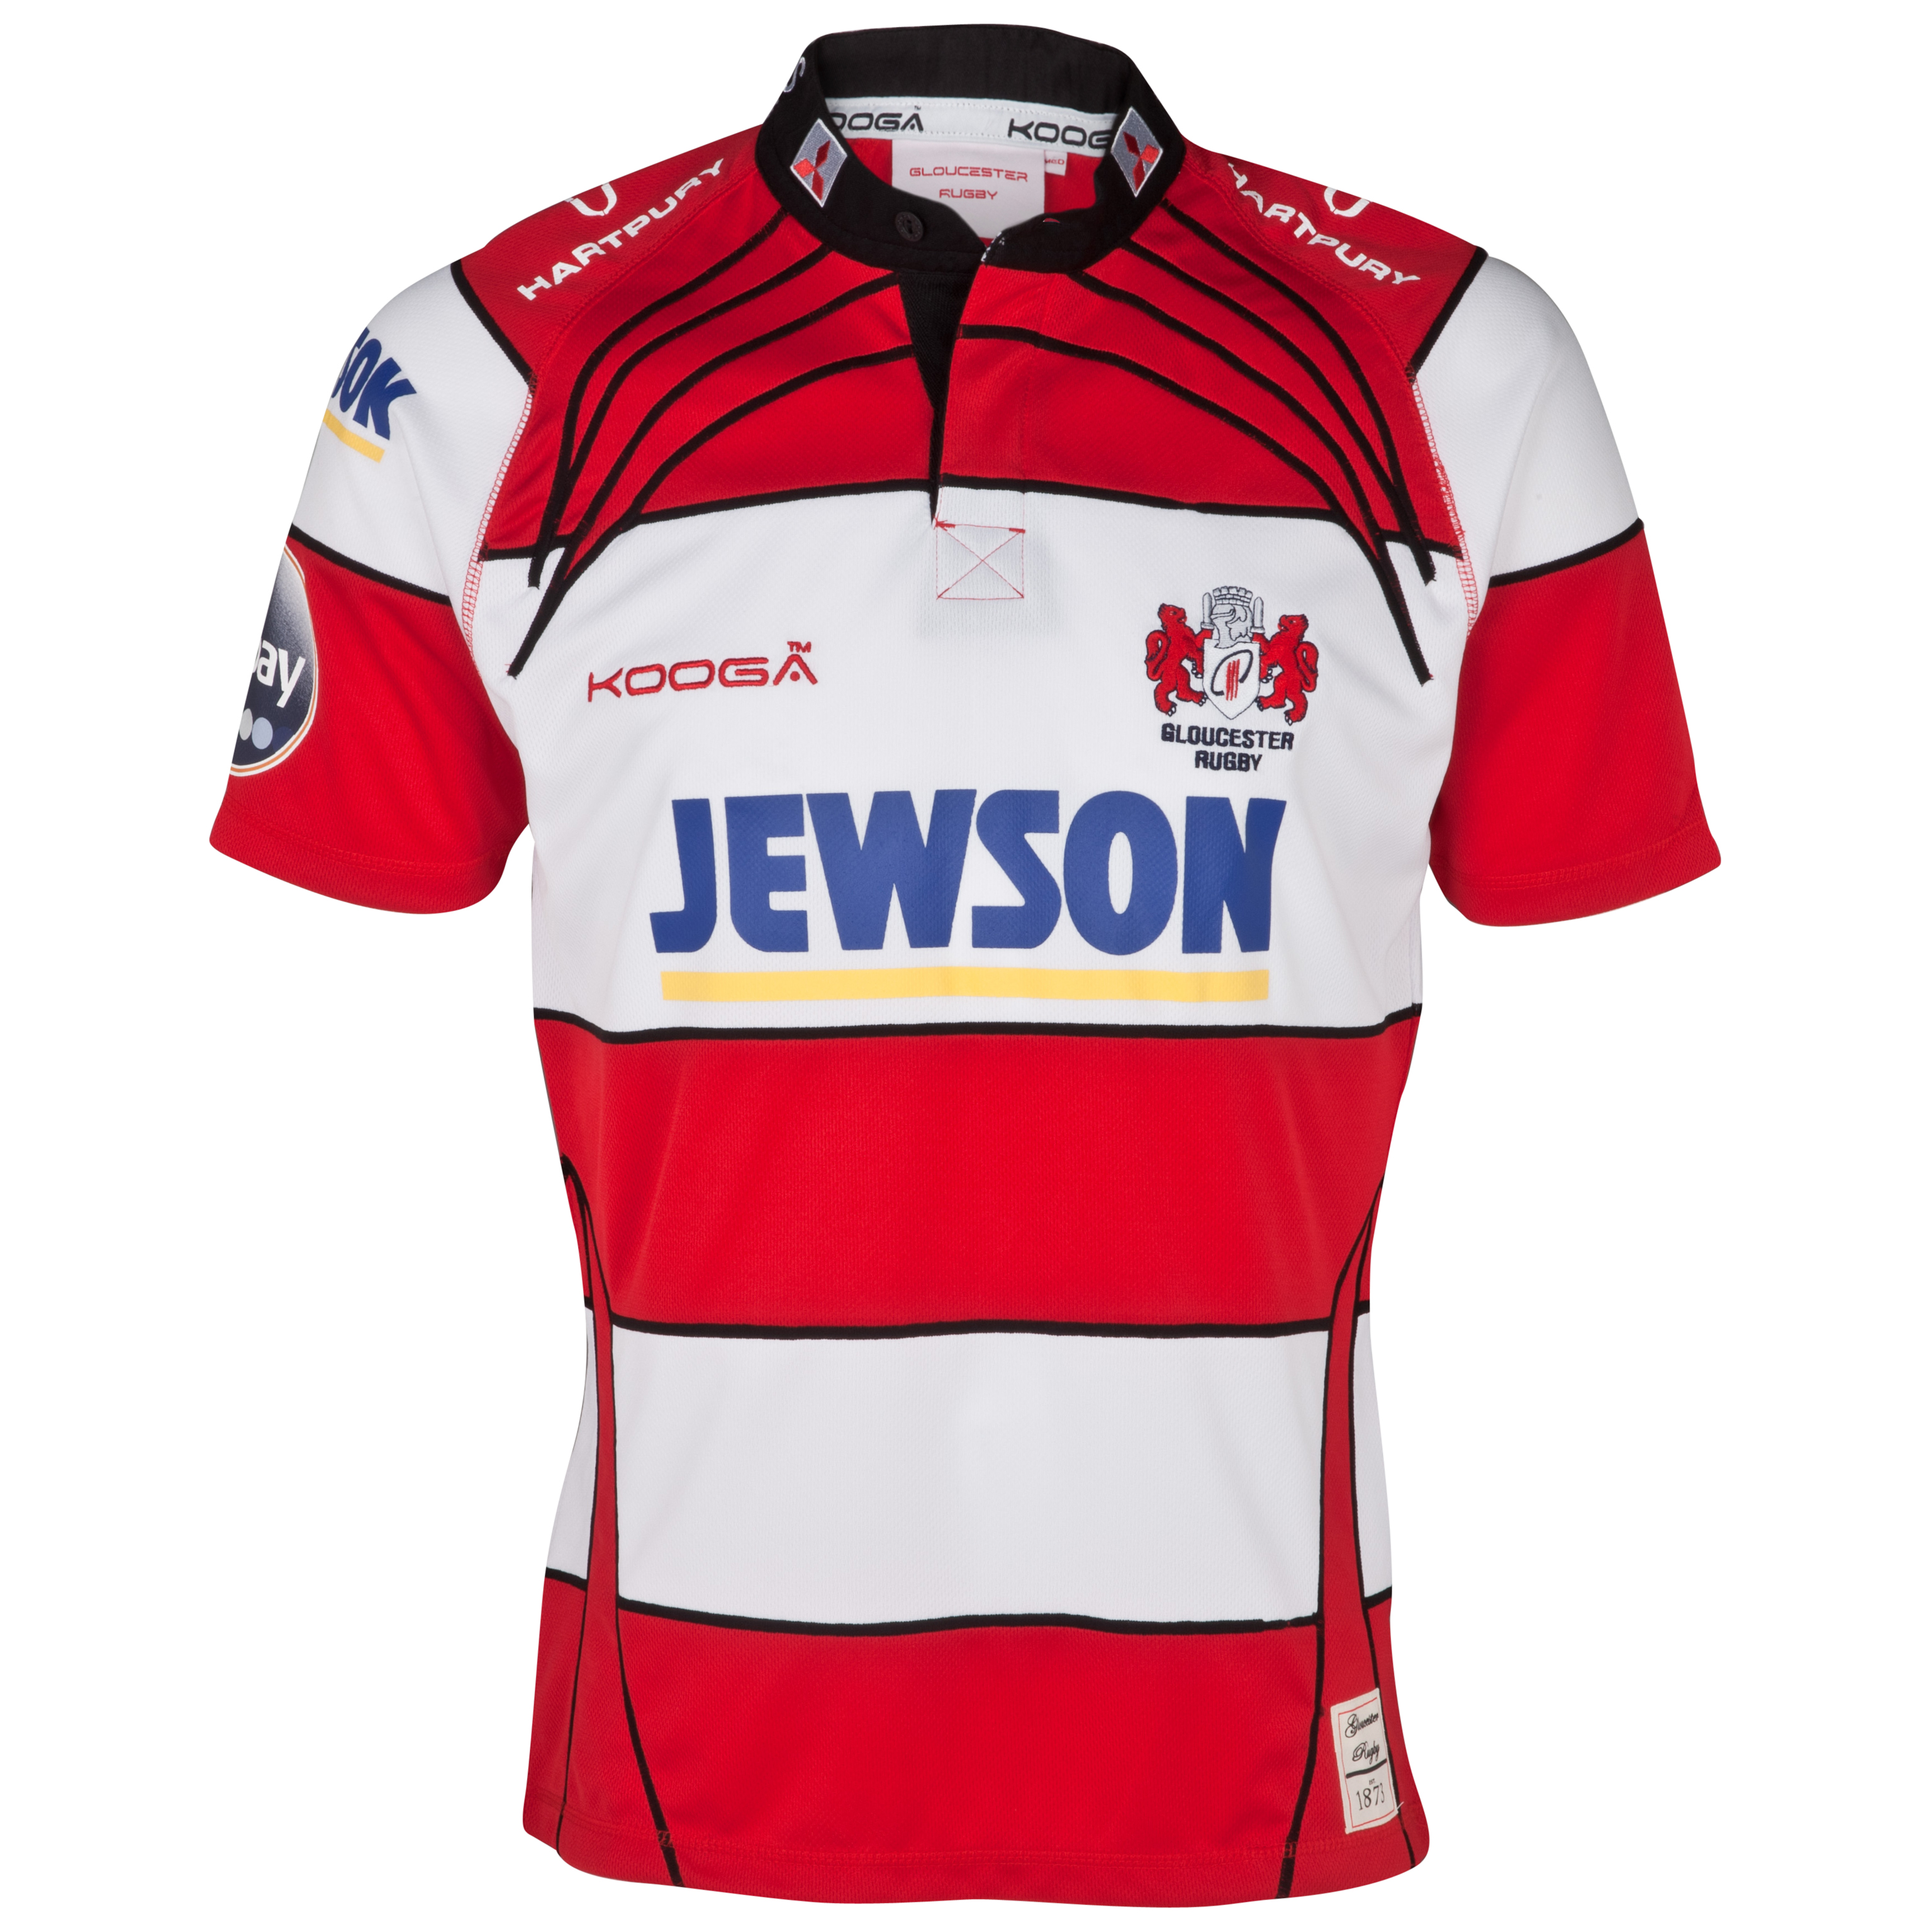 Gloucester Home Supporters Shirt 2012/13